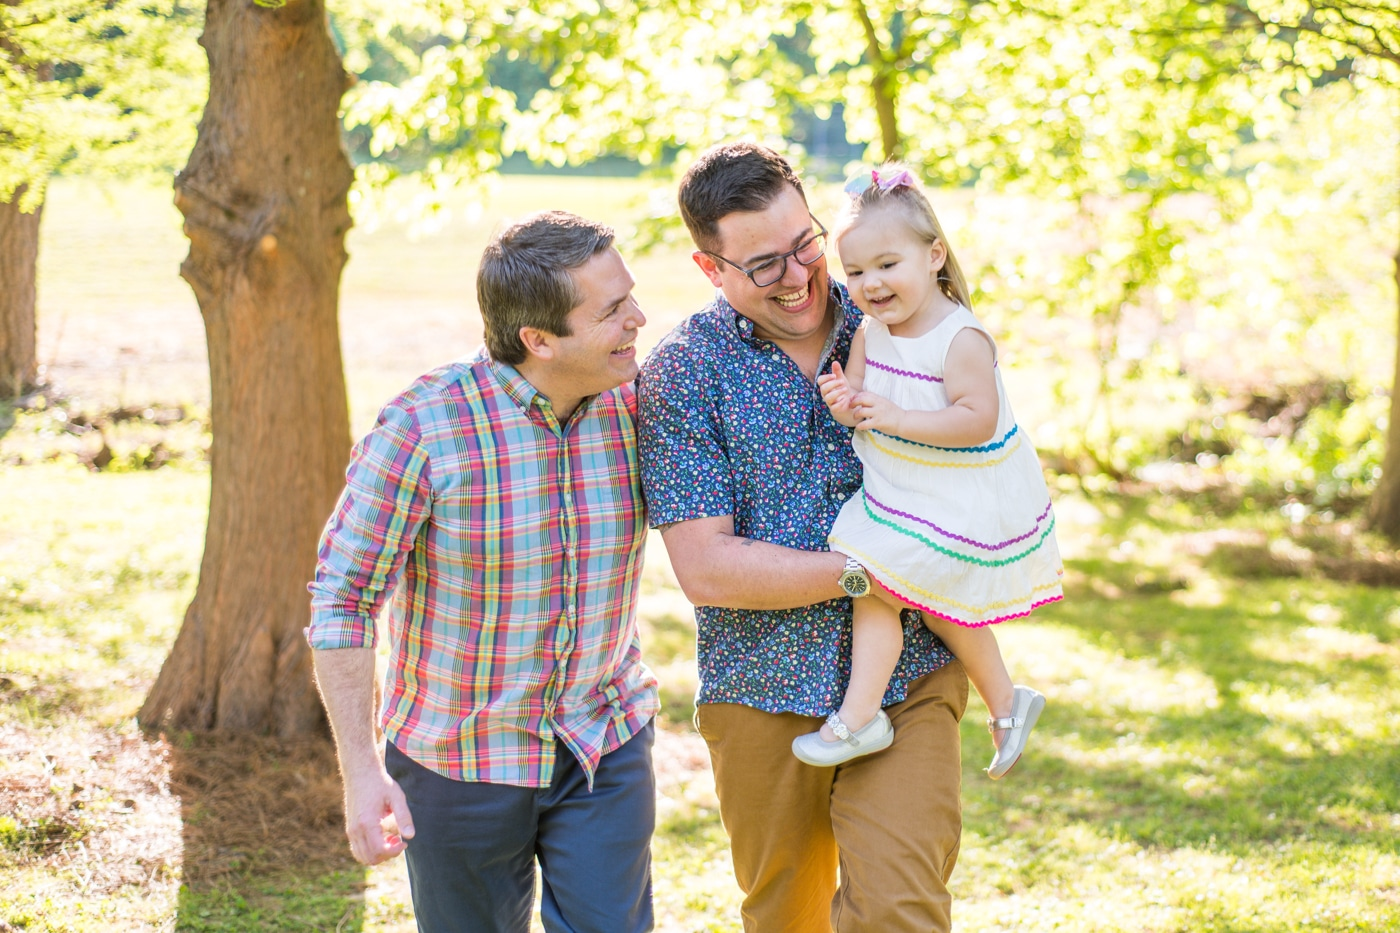 Two dads smiling and holding their toddler outside on a sunny day in Atlanta Raven Shutley Studios